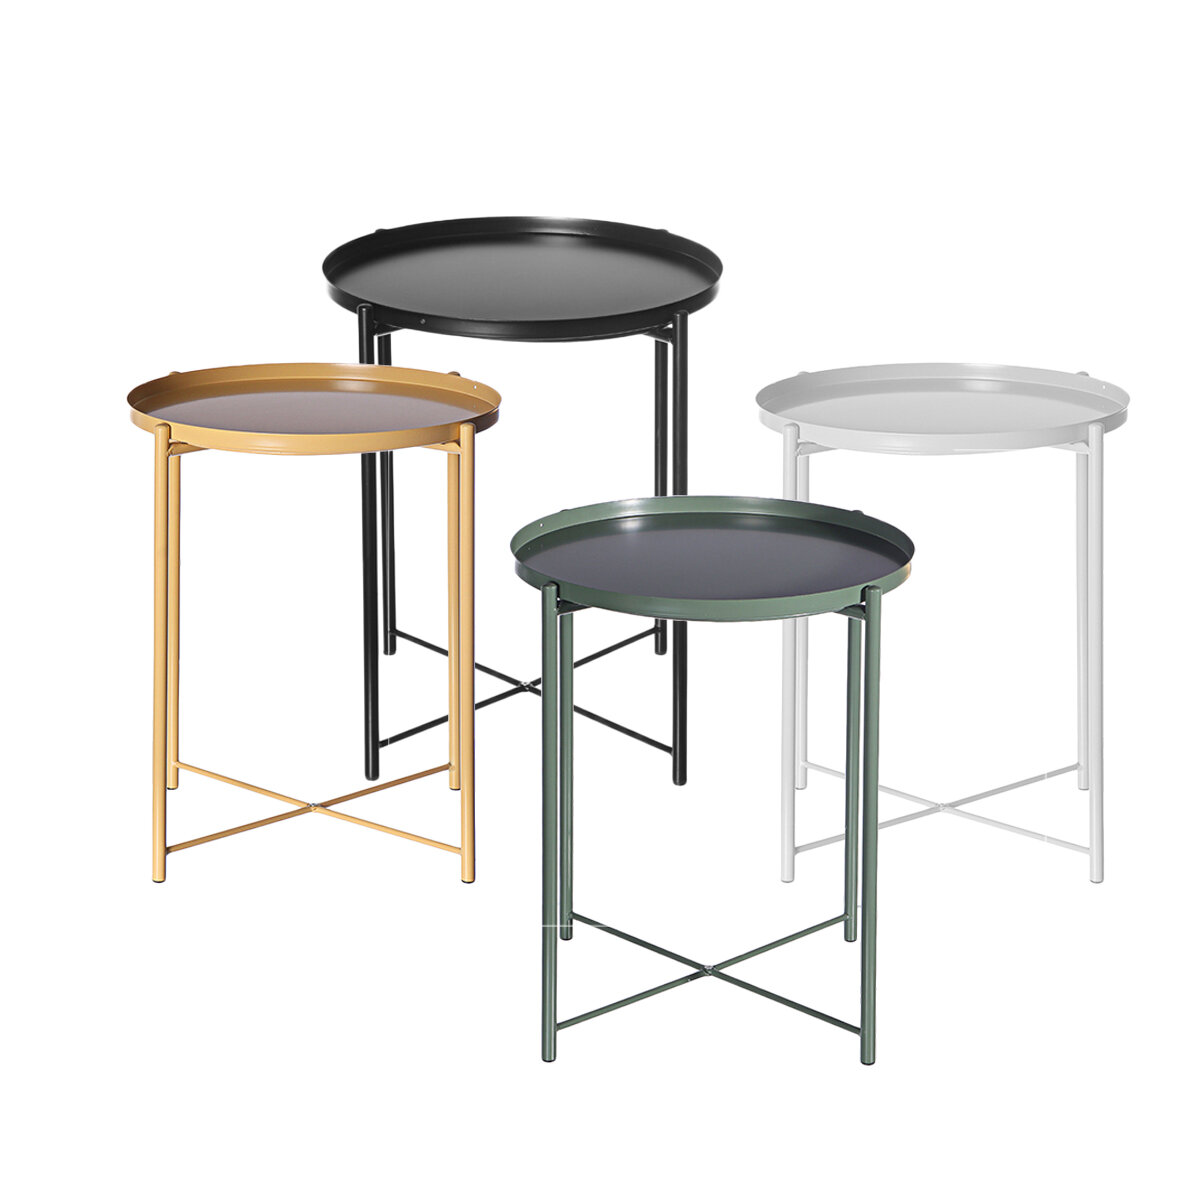 Round Side End Table Iron Paint Metal Gardening Flower Stand for Living Room